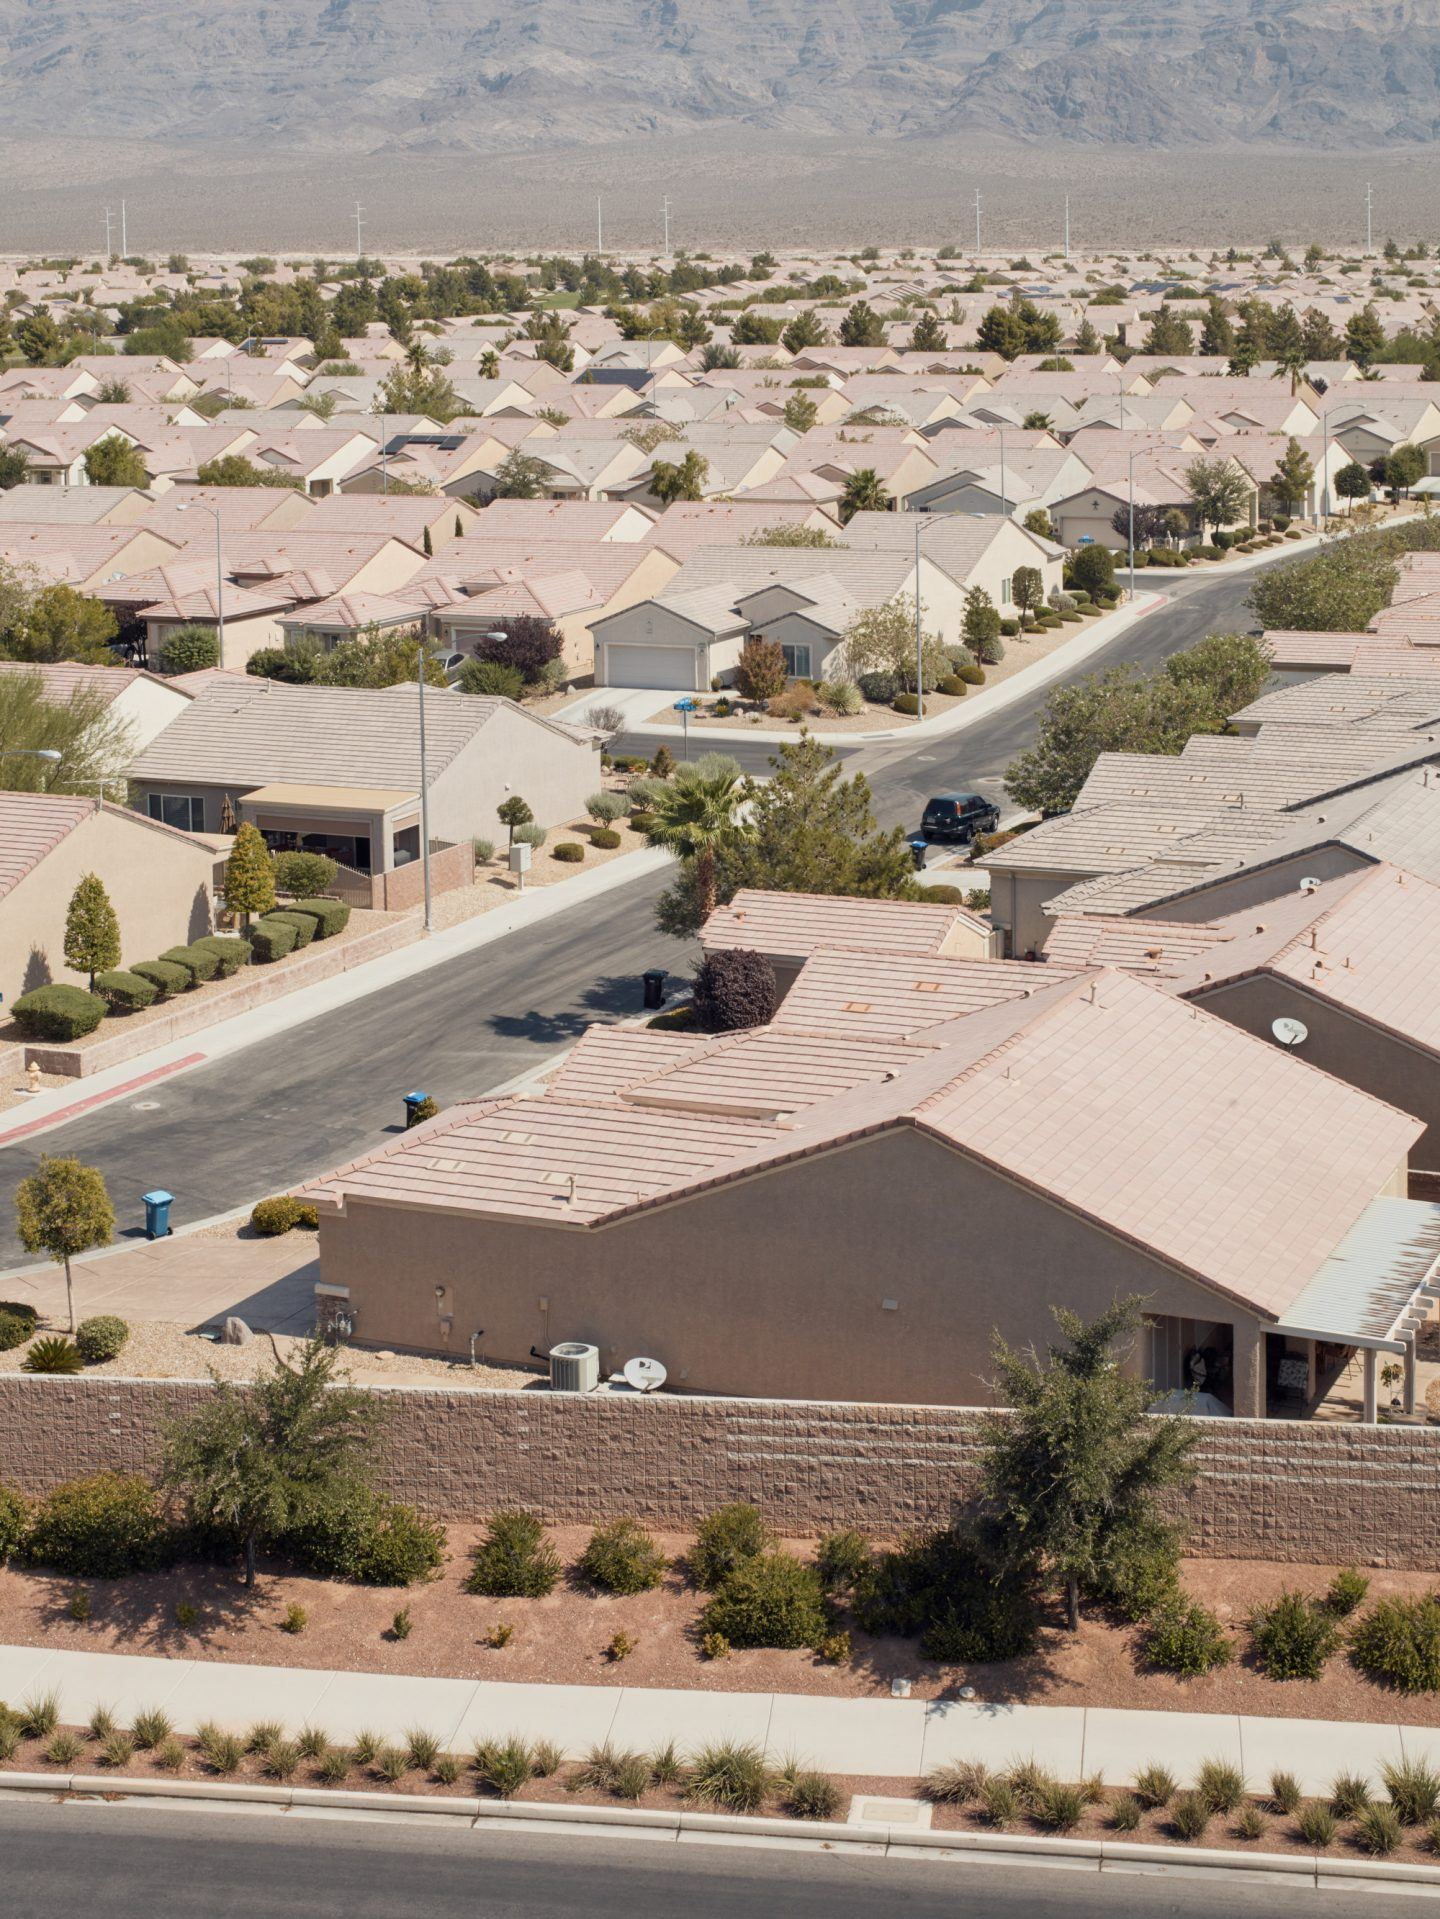 IGNANT-Photography-Ross-Mantle-North-Las-Vegas-025